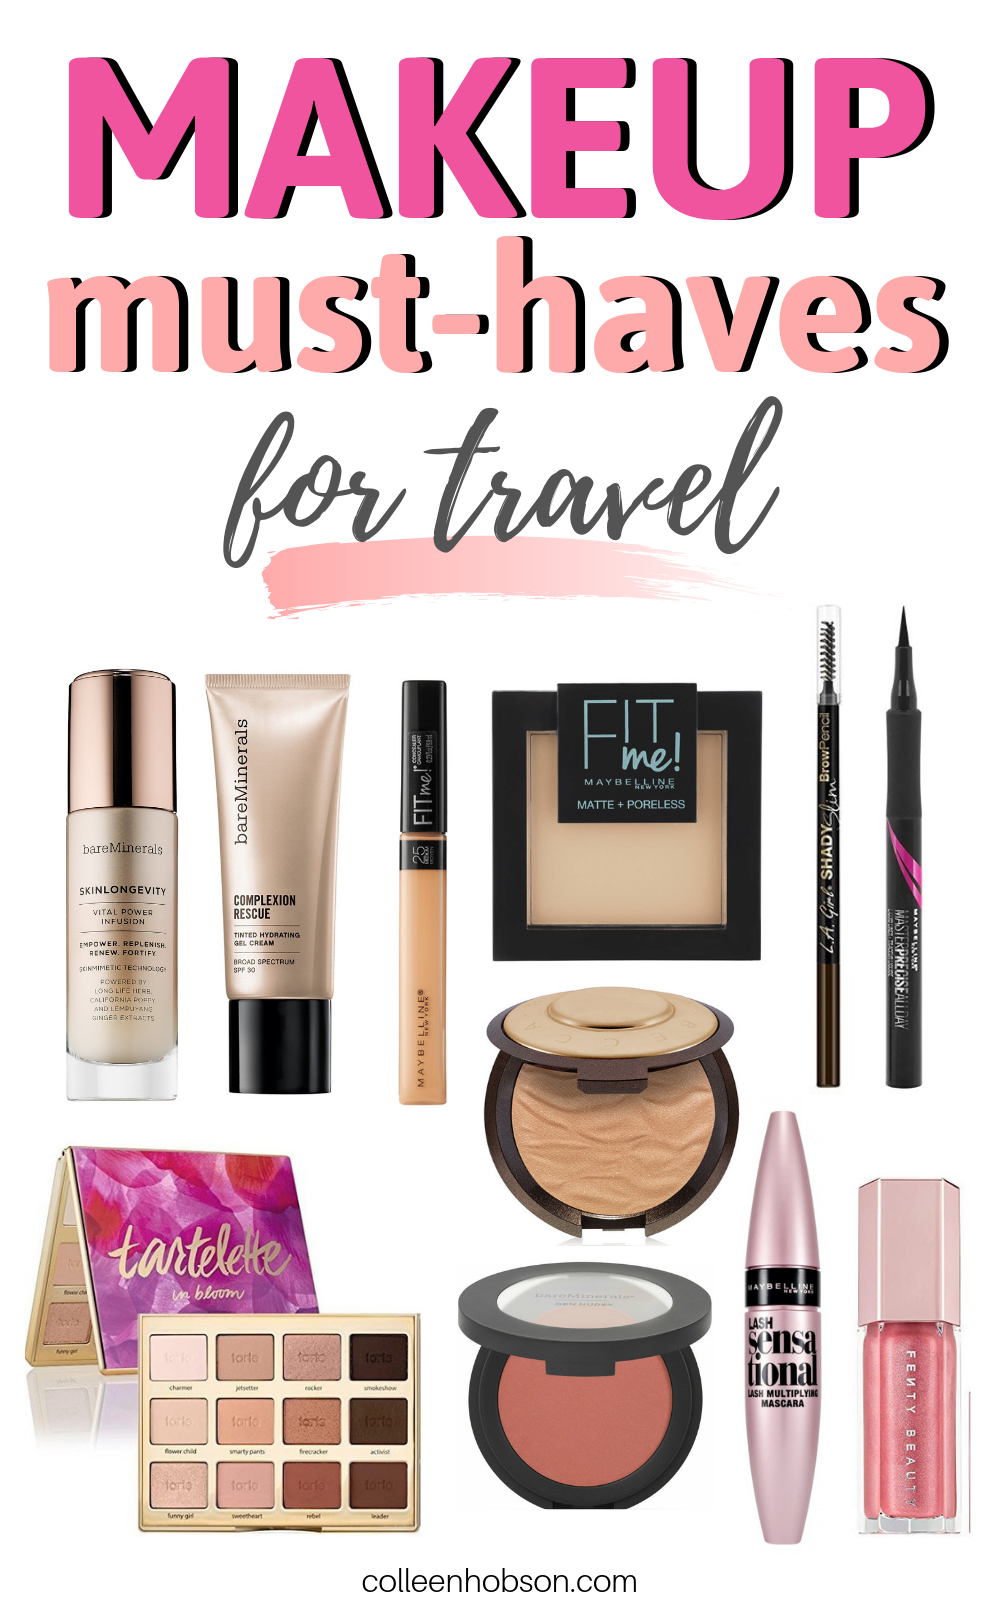 Makeup Must Haves For Travel Makeup must haves, Makeup